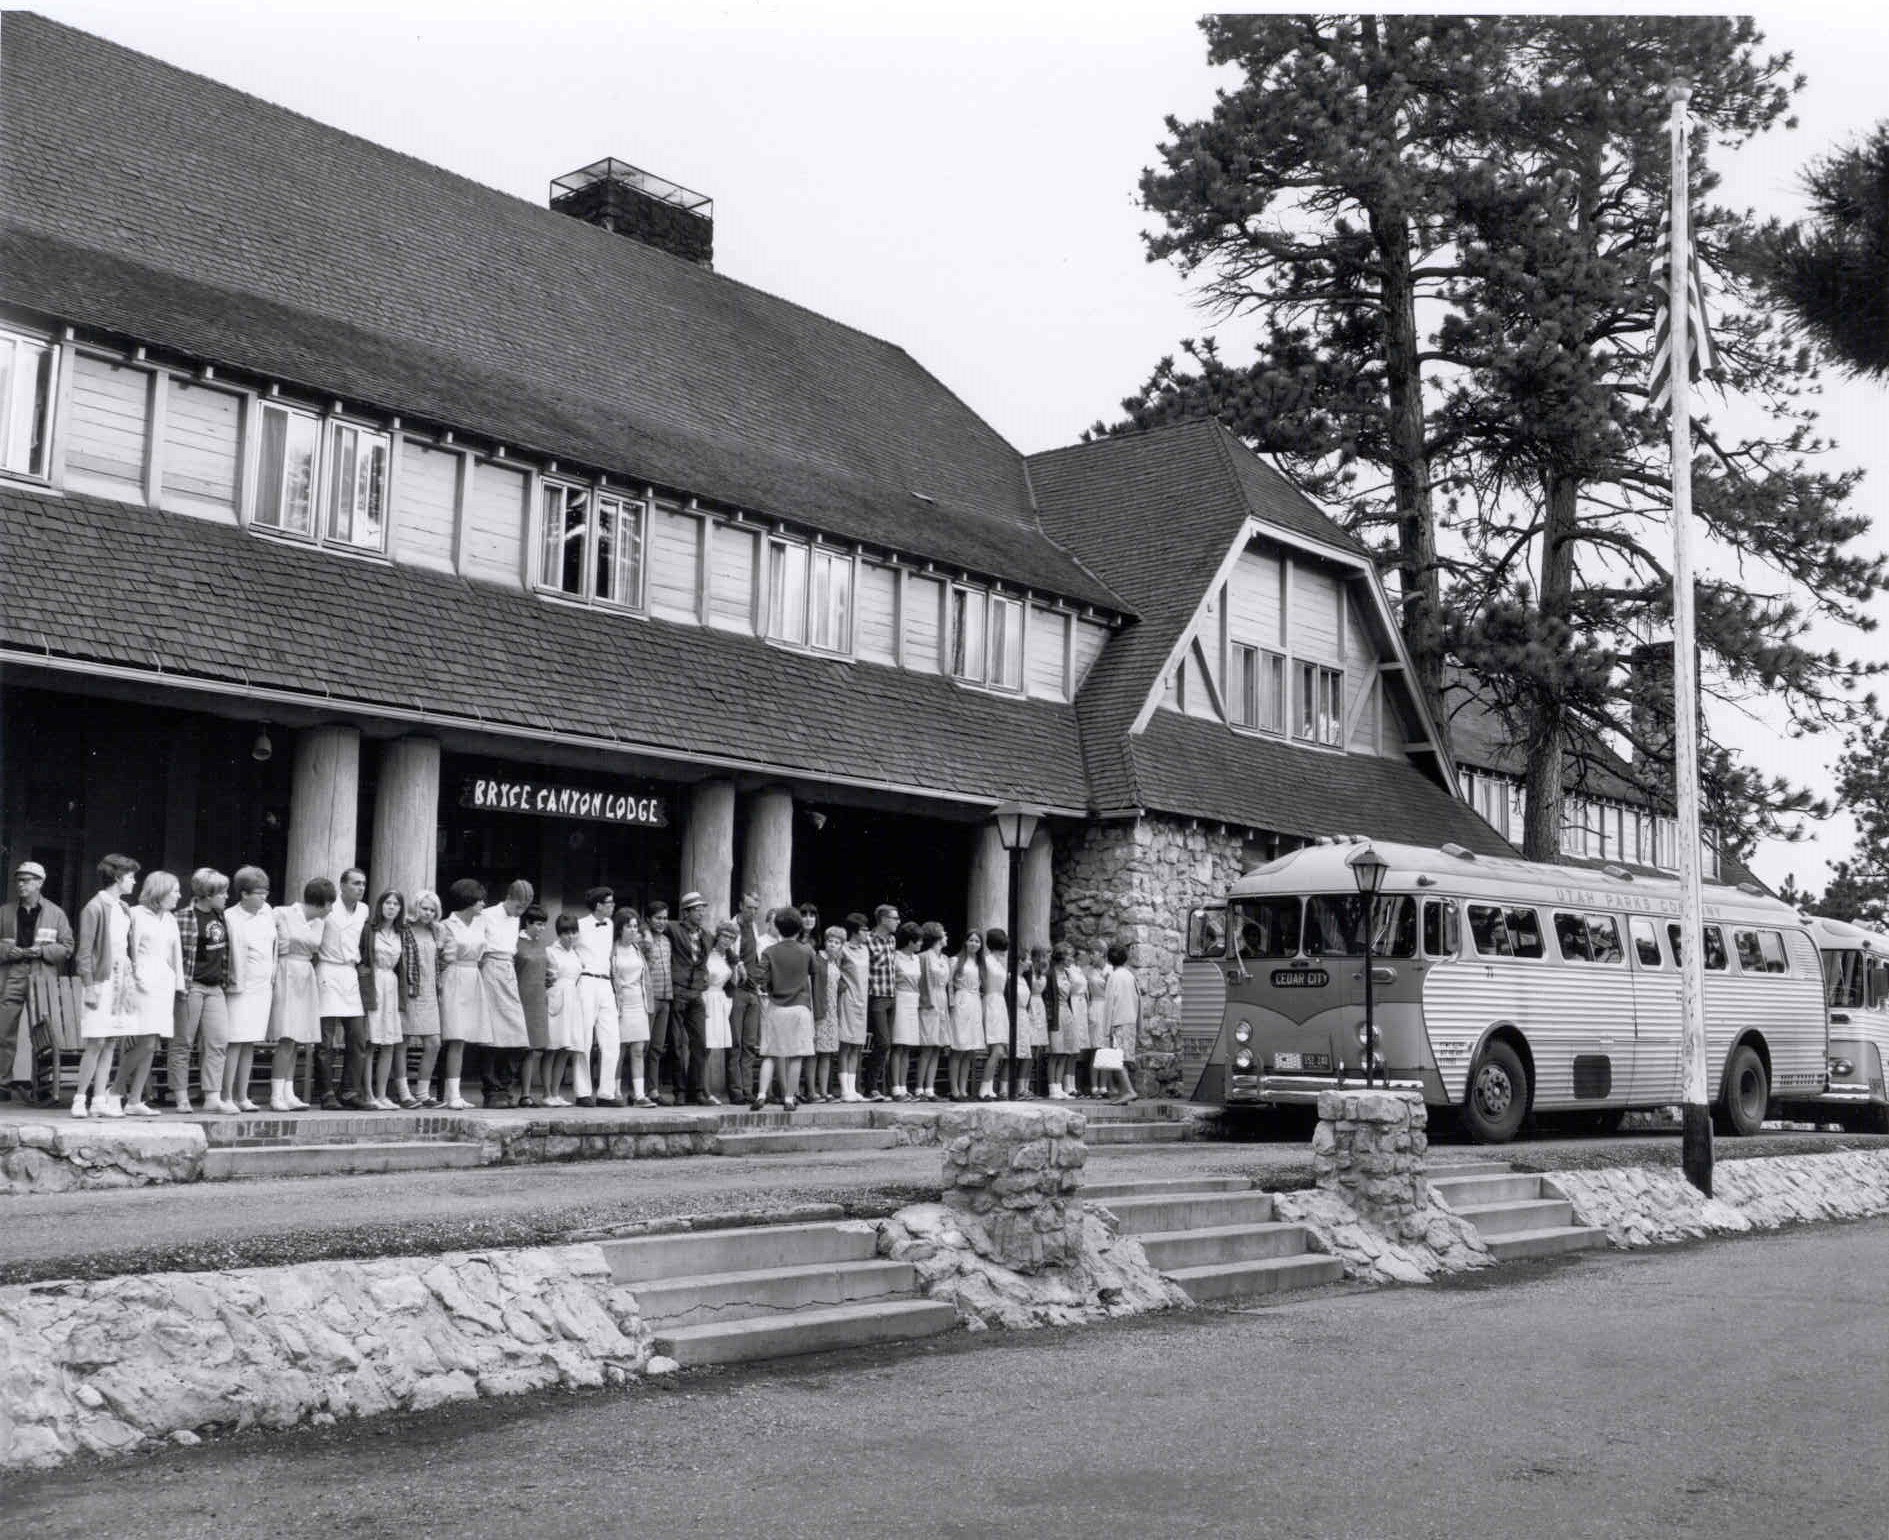 The Bryce Canyon Lodge